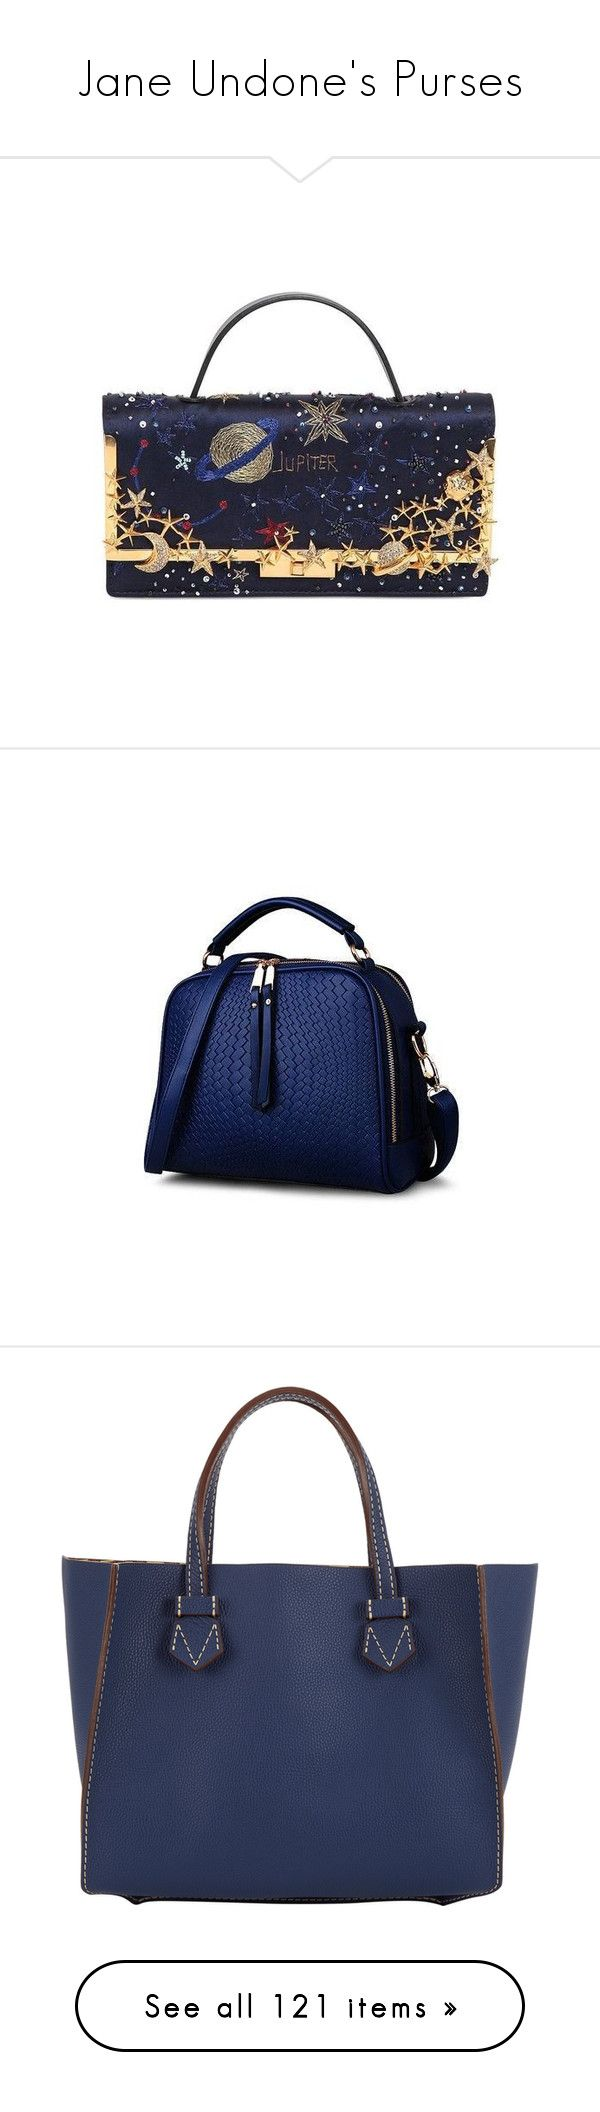 """""""Jane Undone's Purses"""" by janeundone on Polyvore featuring bags, handbags, shoulder bags, navy, blue shoulder bag, patent leather purse, fold over purse, navy patent leather handbag, navy blue shoulder bag and navy leather purse"""